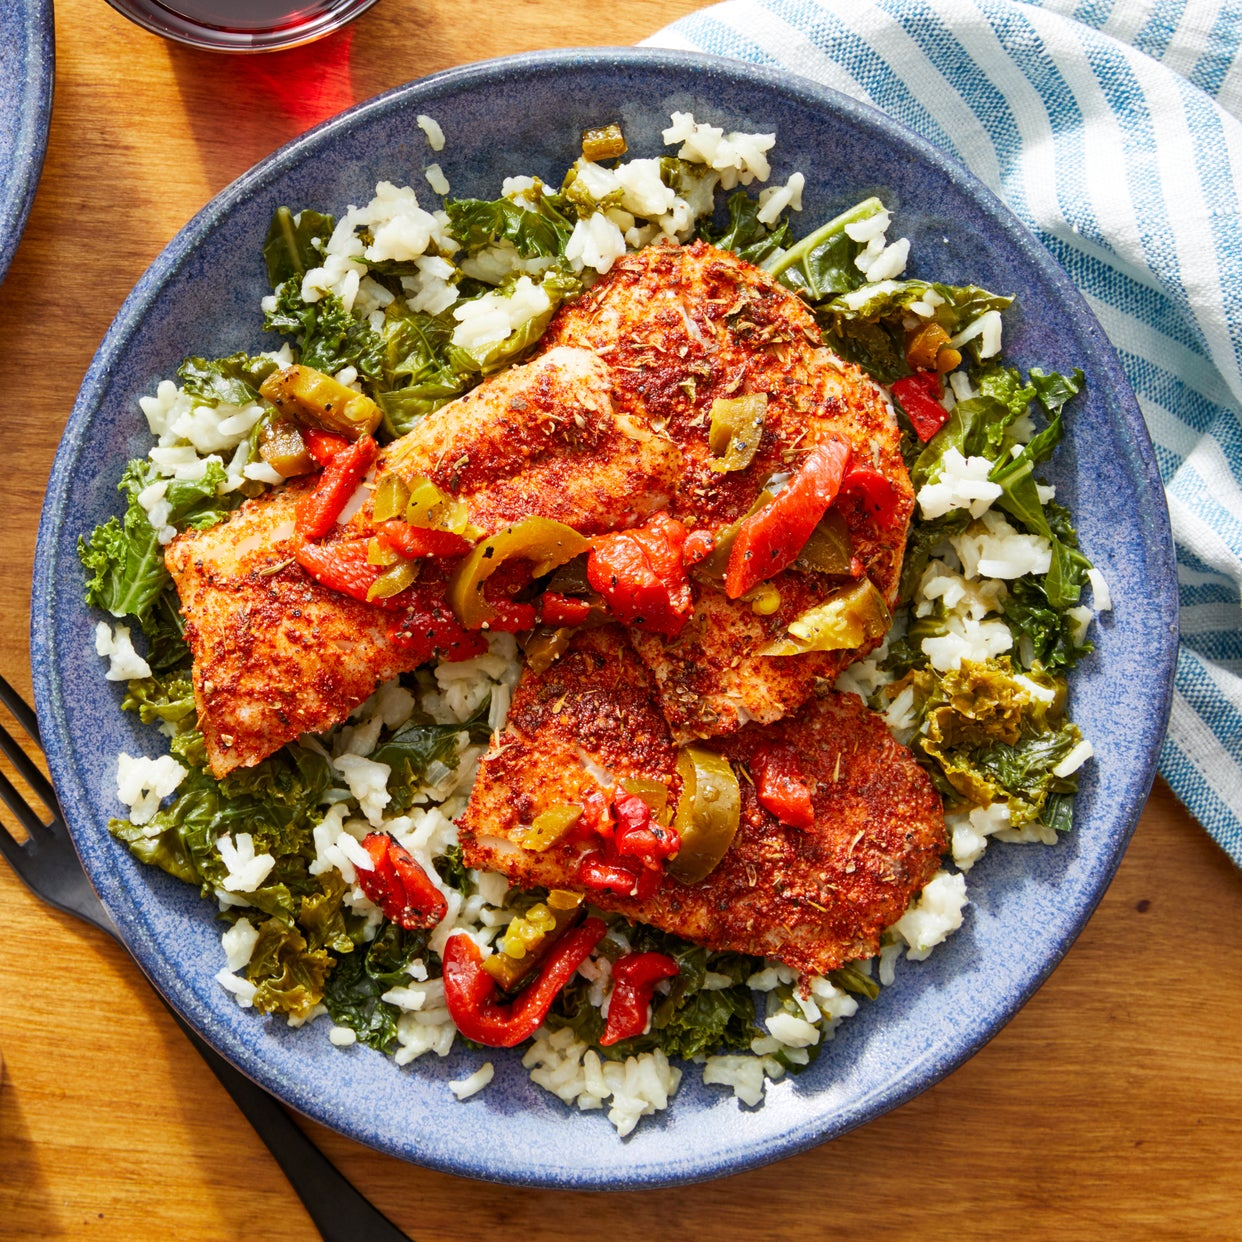 Cajun-Spiced Fish with Kale Rice & Pepper Topping